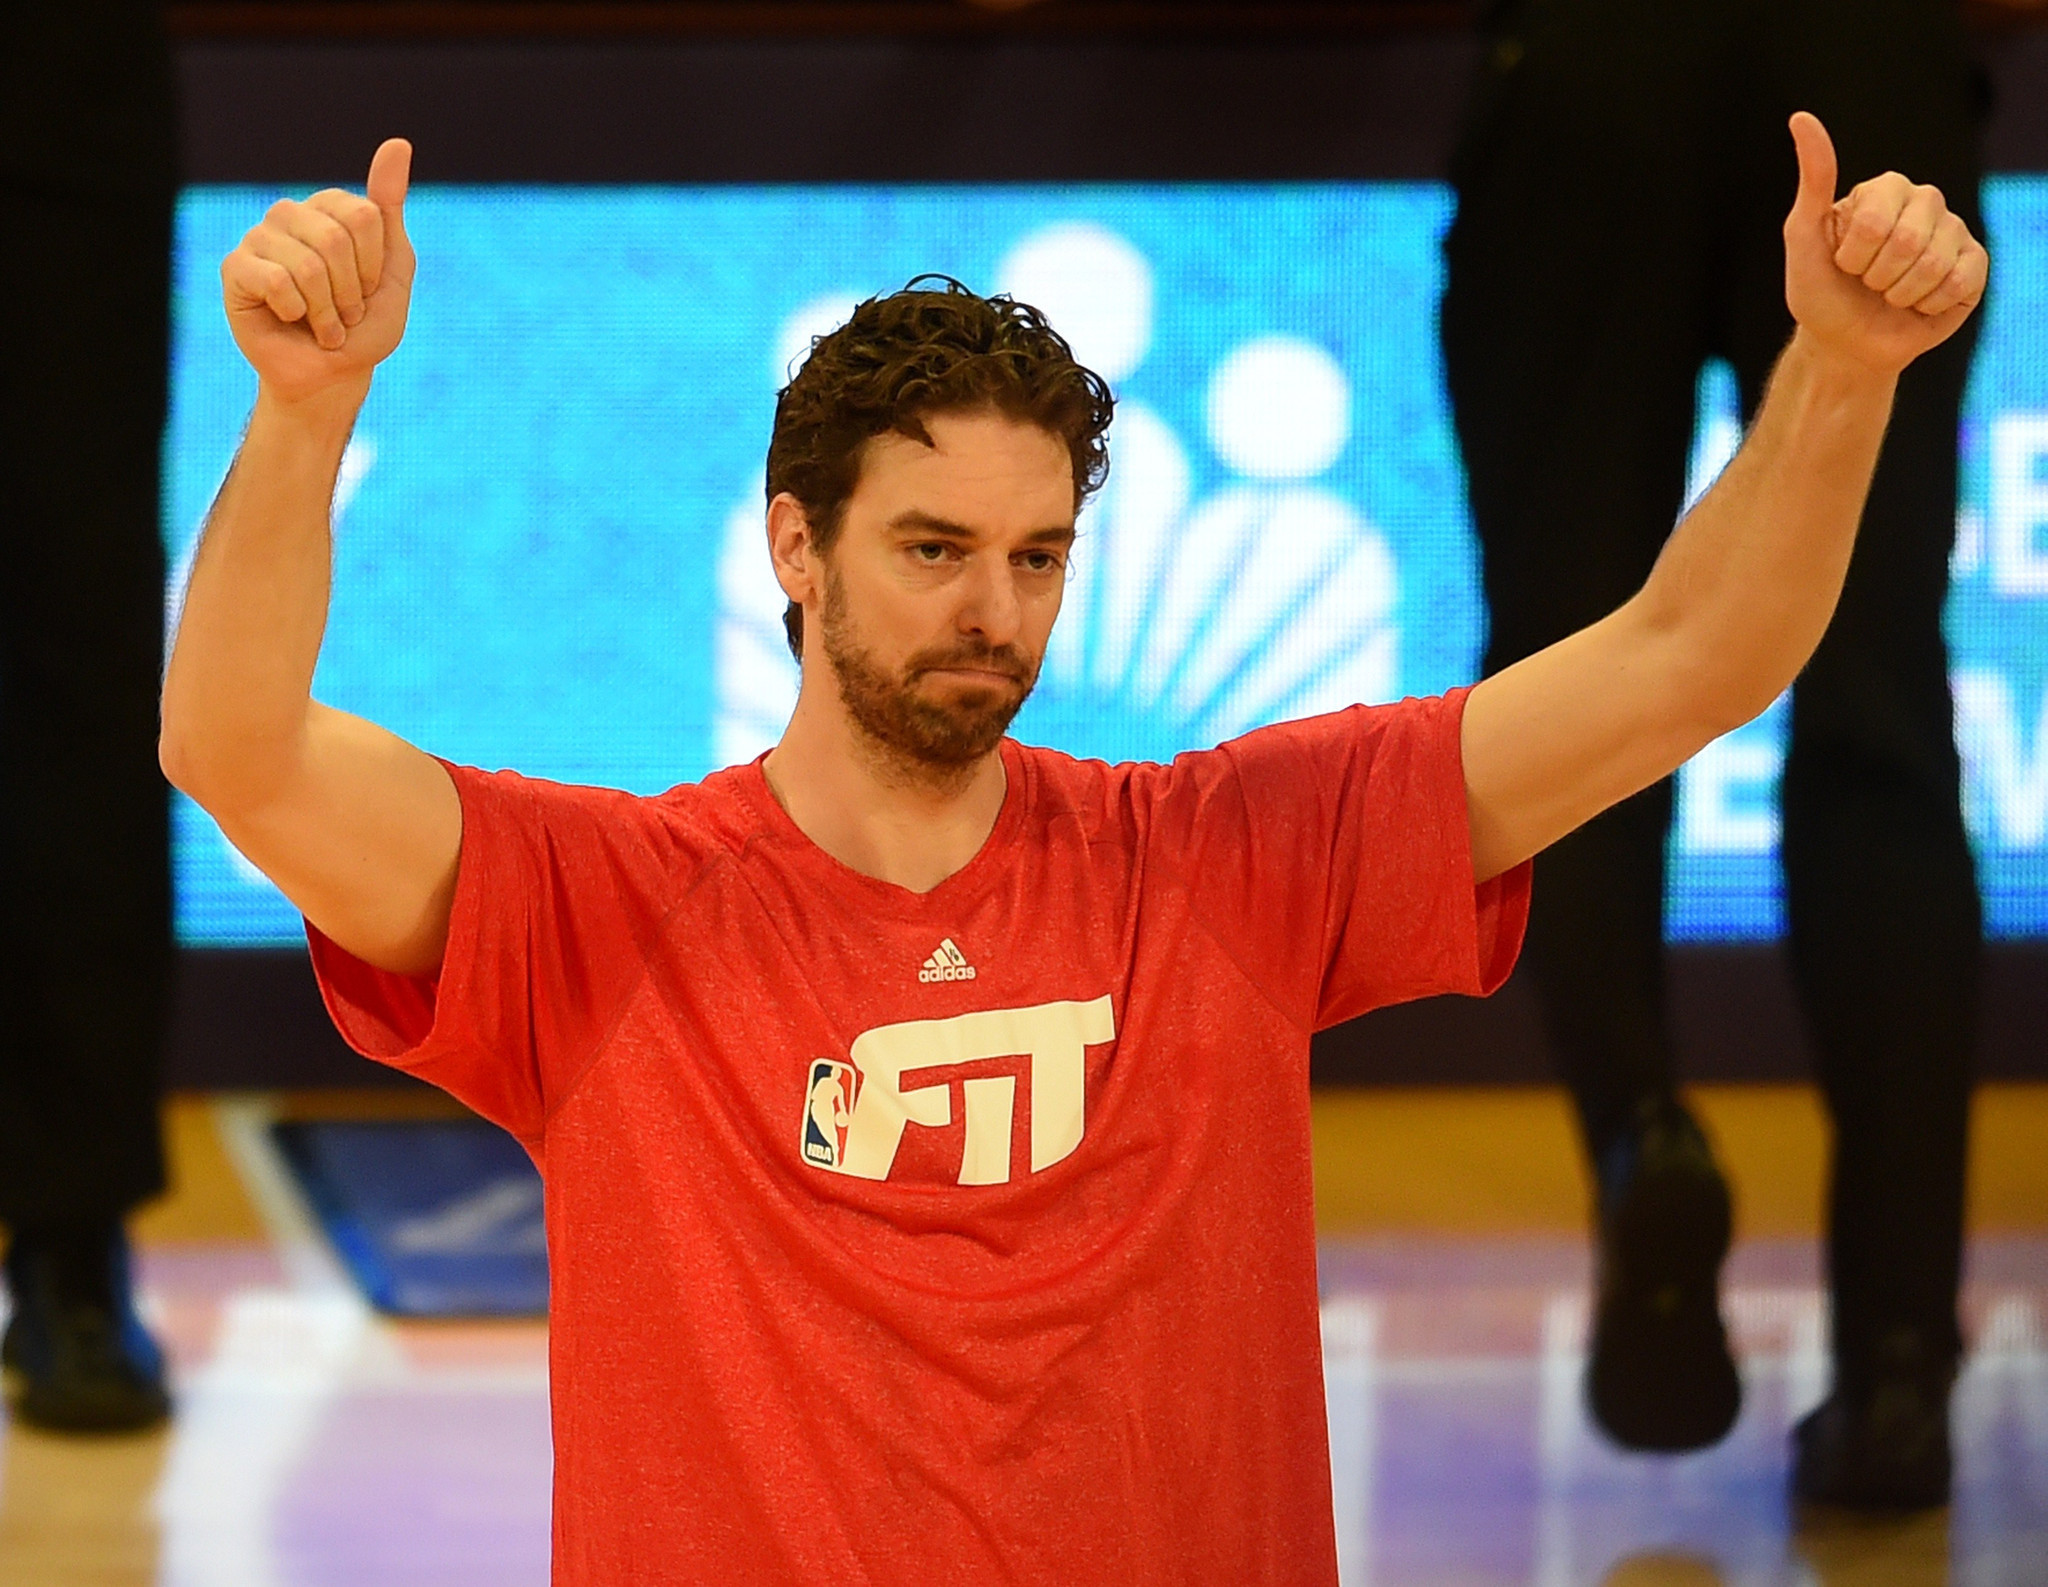 Bulls' Pau Gasol receives the ovation he deserves from Lakers fans